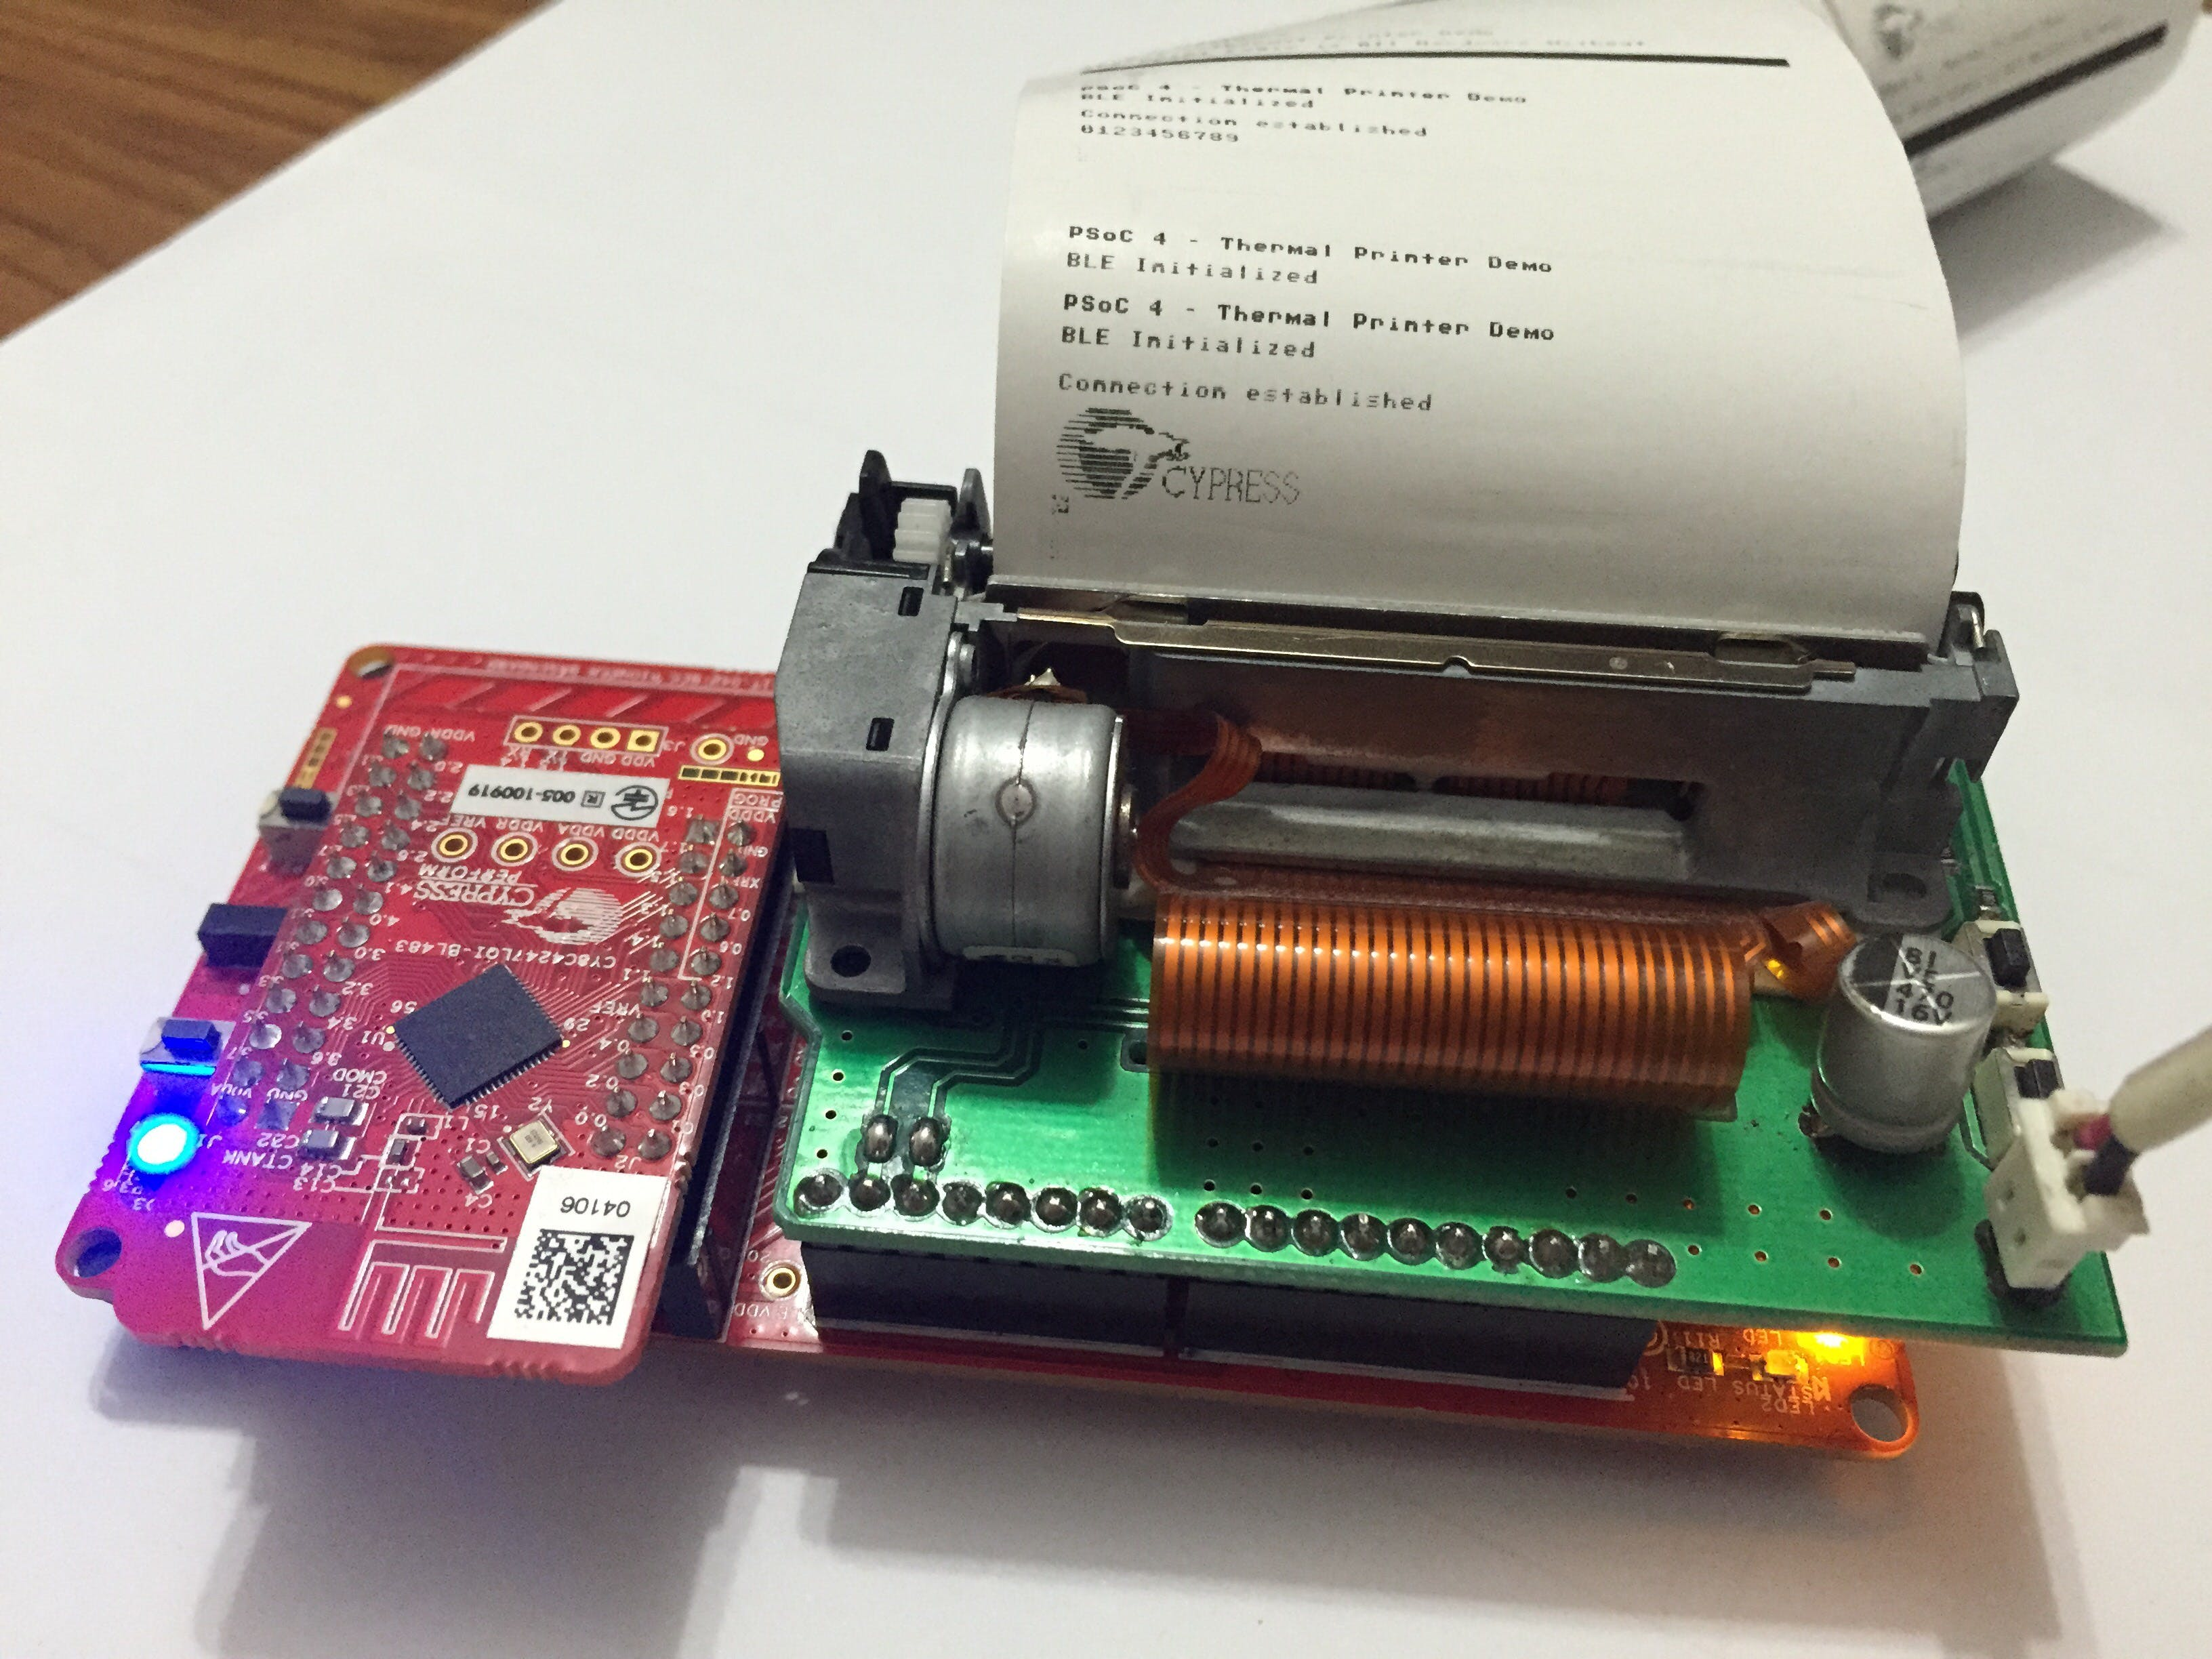 PSoC 4 BLE Thermal Printer